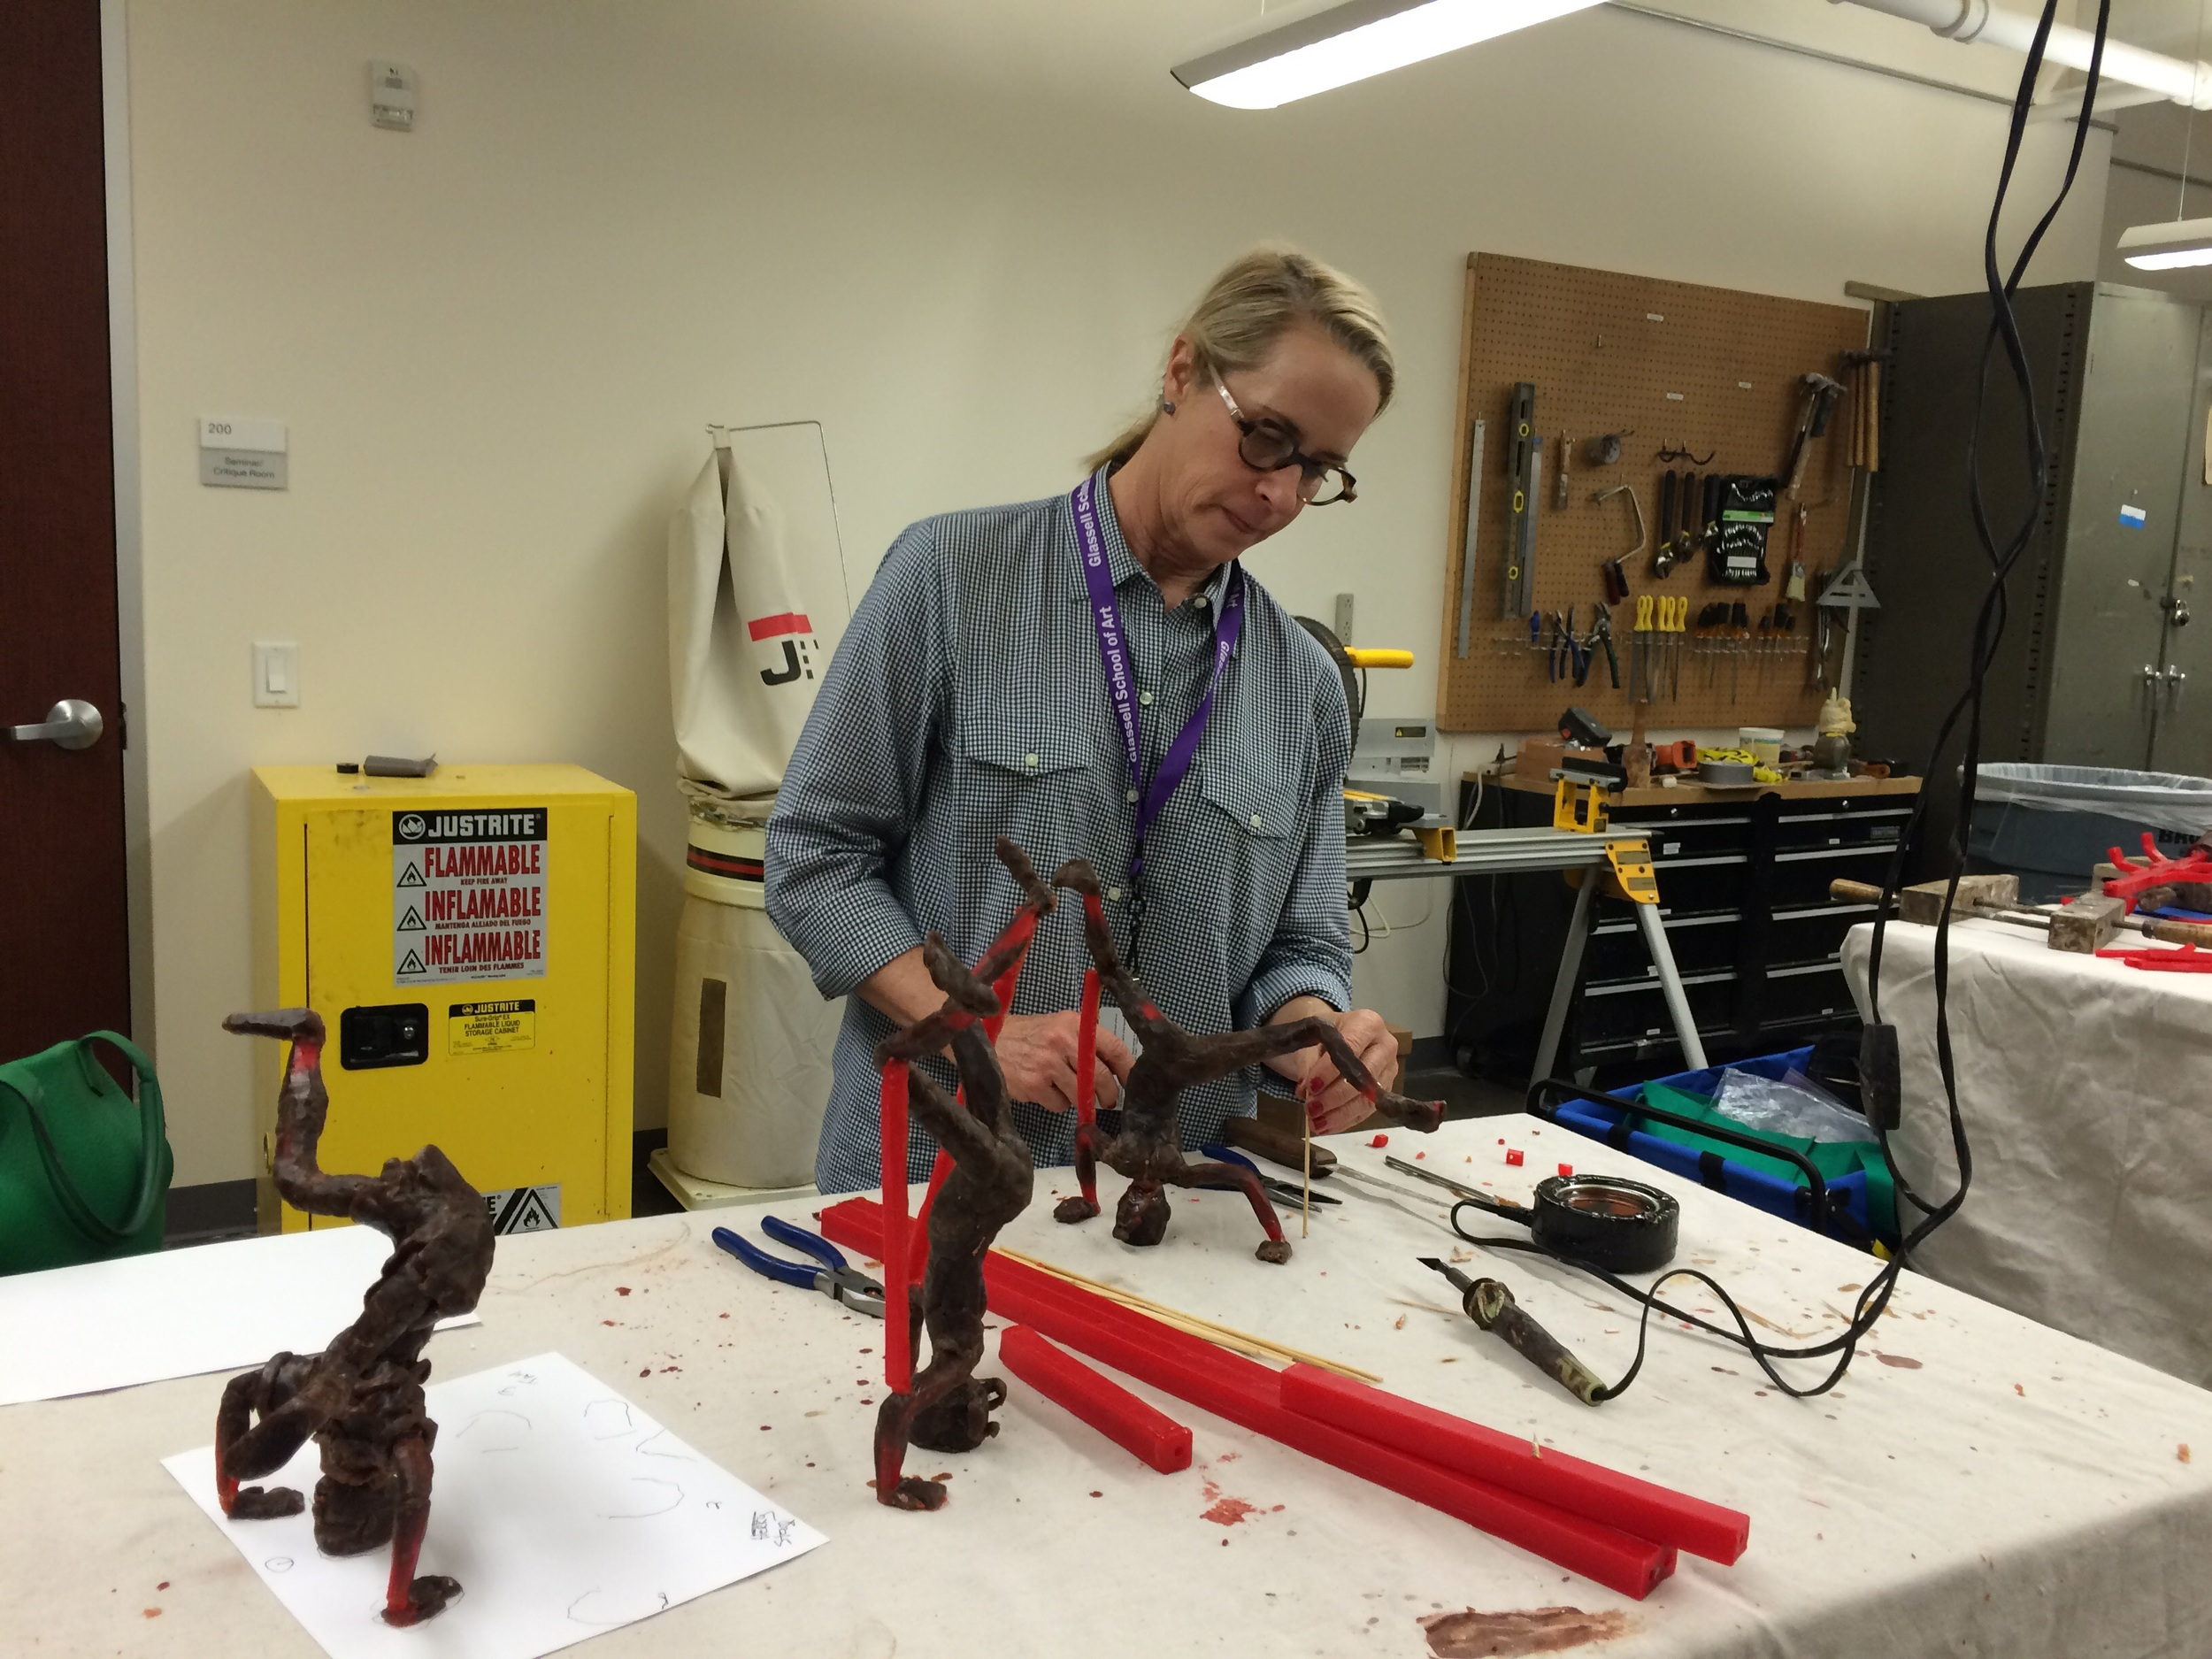 Me reinforcing the armature at the new temporary foundry/sculpture studio at Glassell. I love this place and the people.